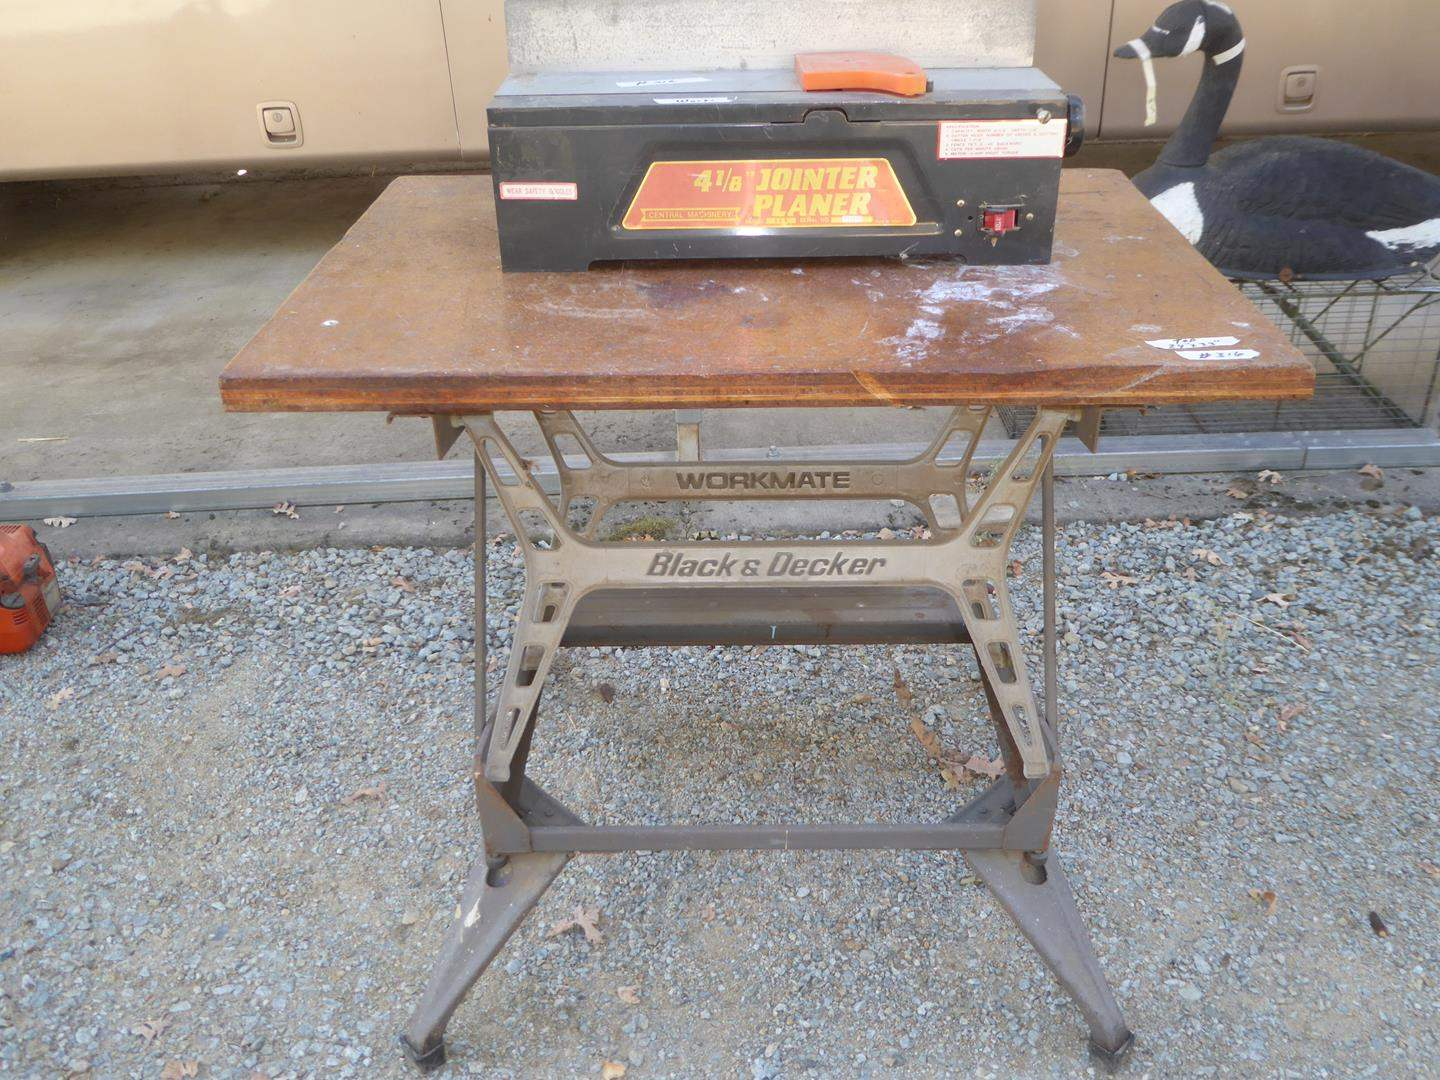 Lot # 316 - Central Machinery Joint Planer & Workmate Table (main image)